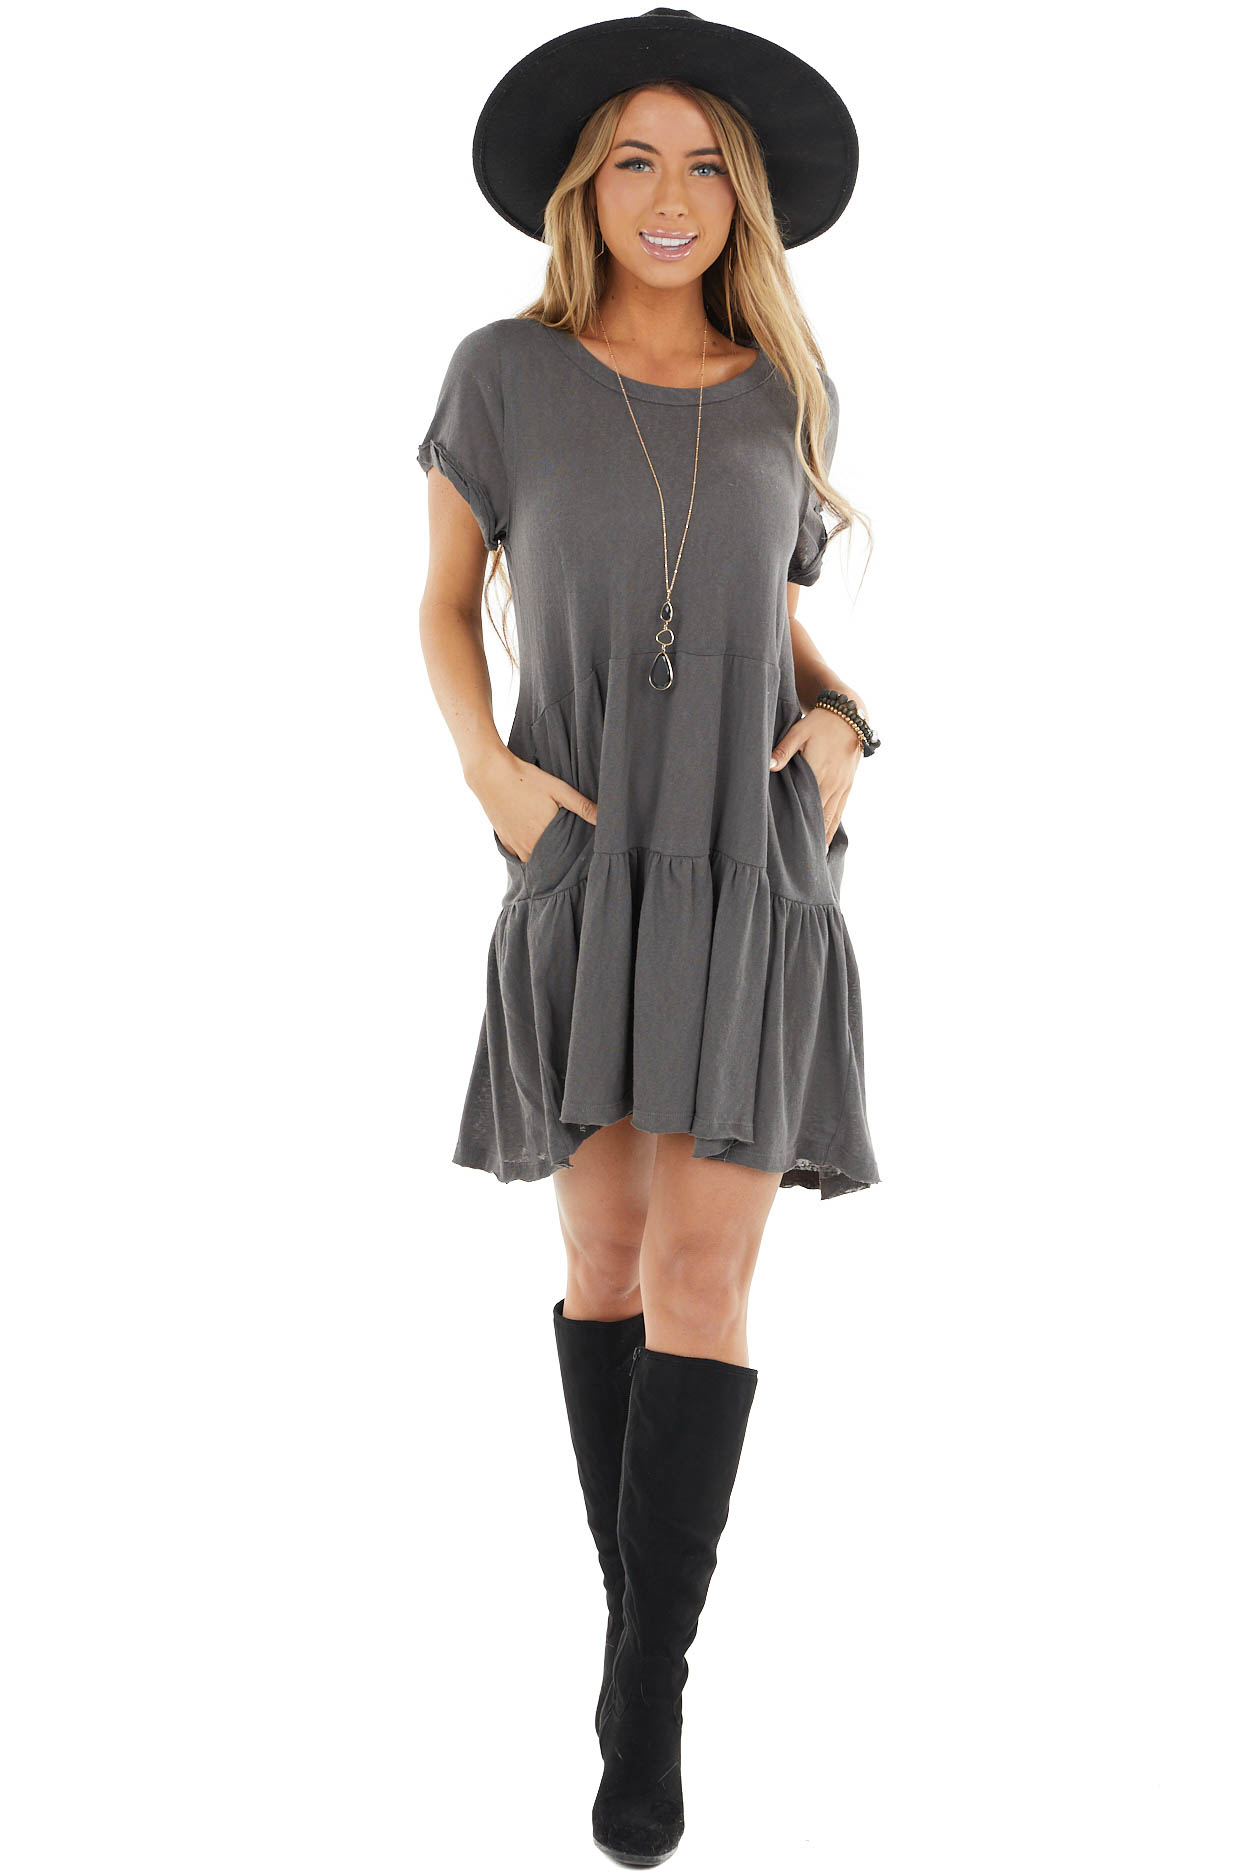 Charcoal Baby Doll Tiered Dress with Raw Edge Details